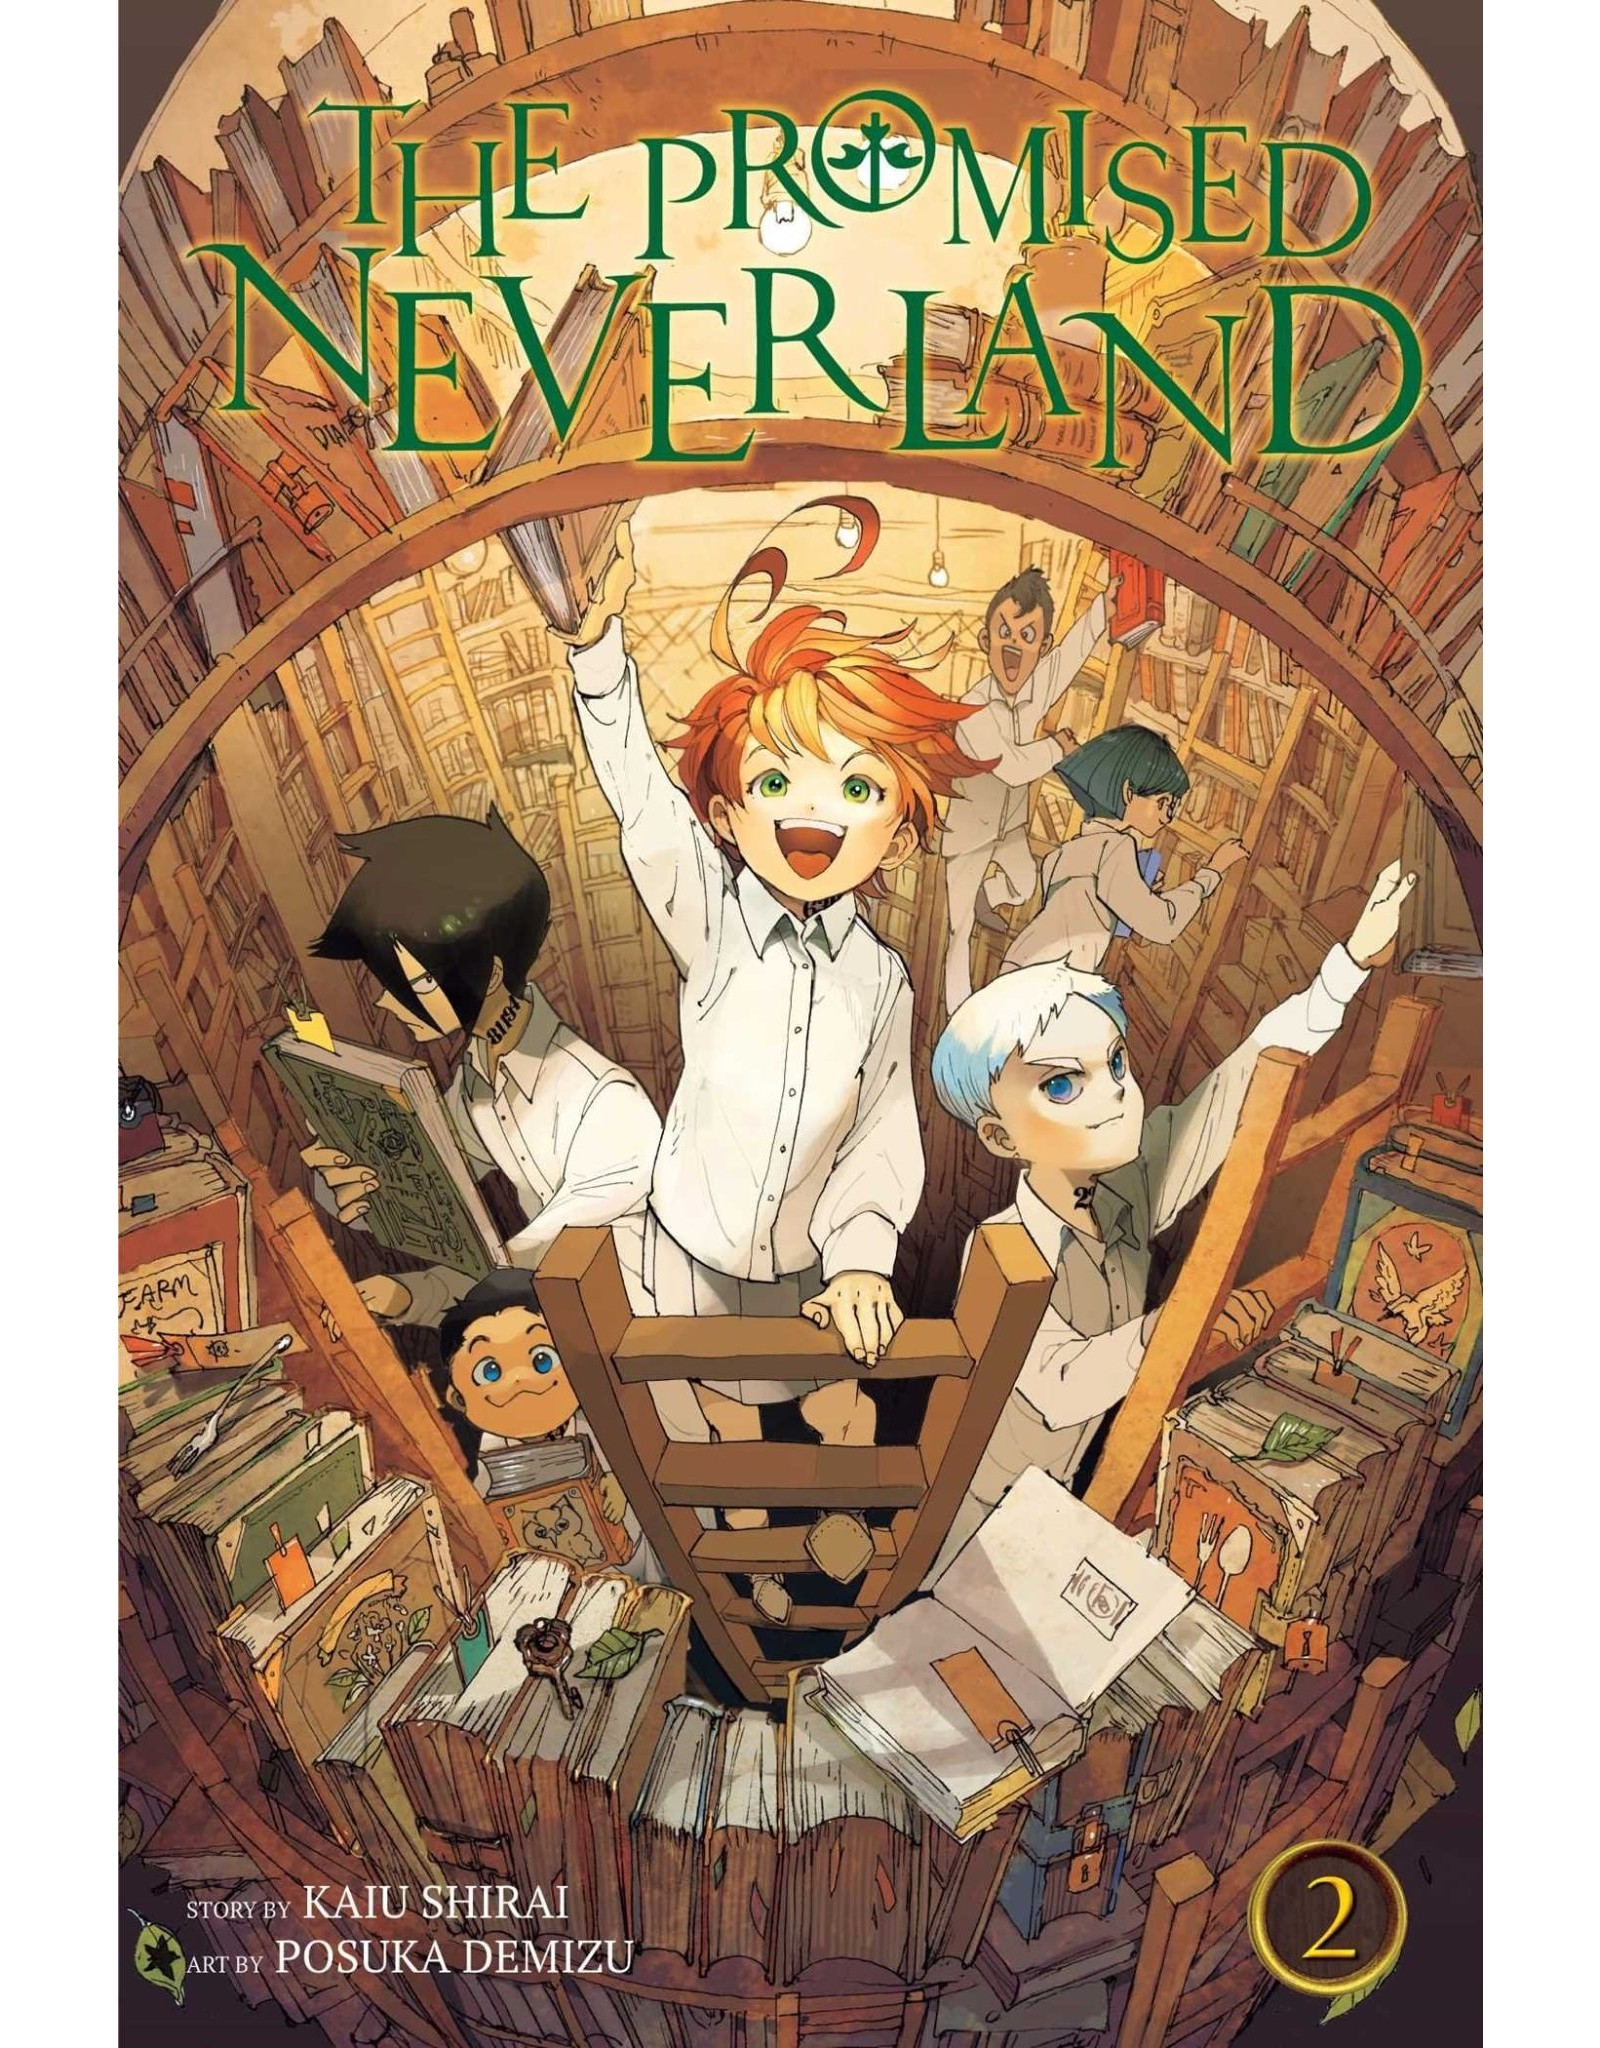 The Promised Neverland 02 (English Version)